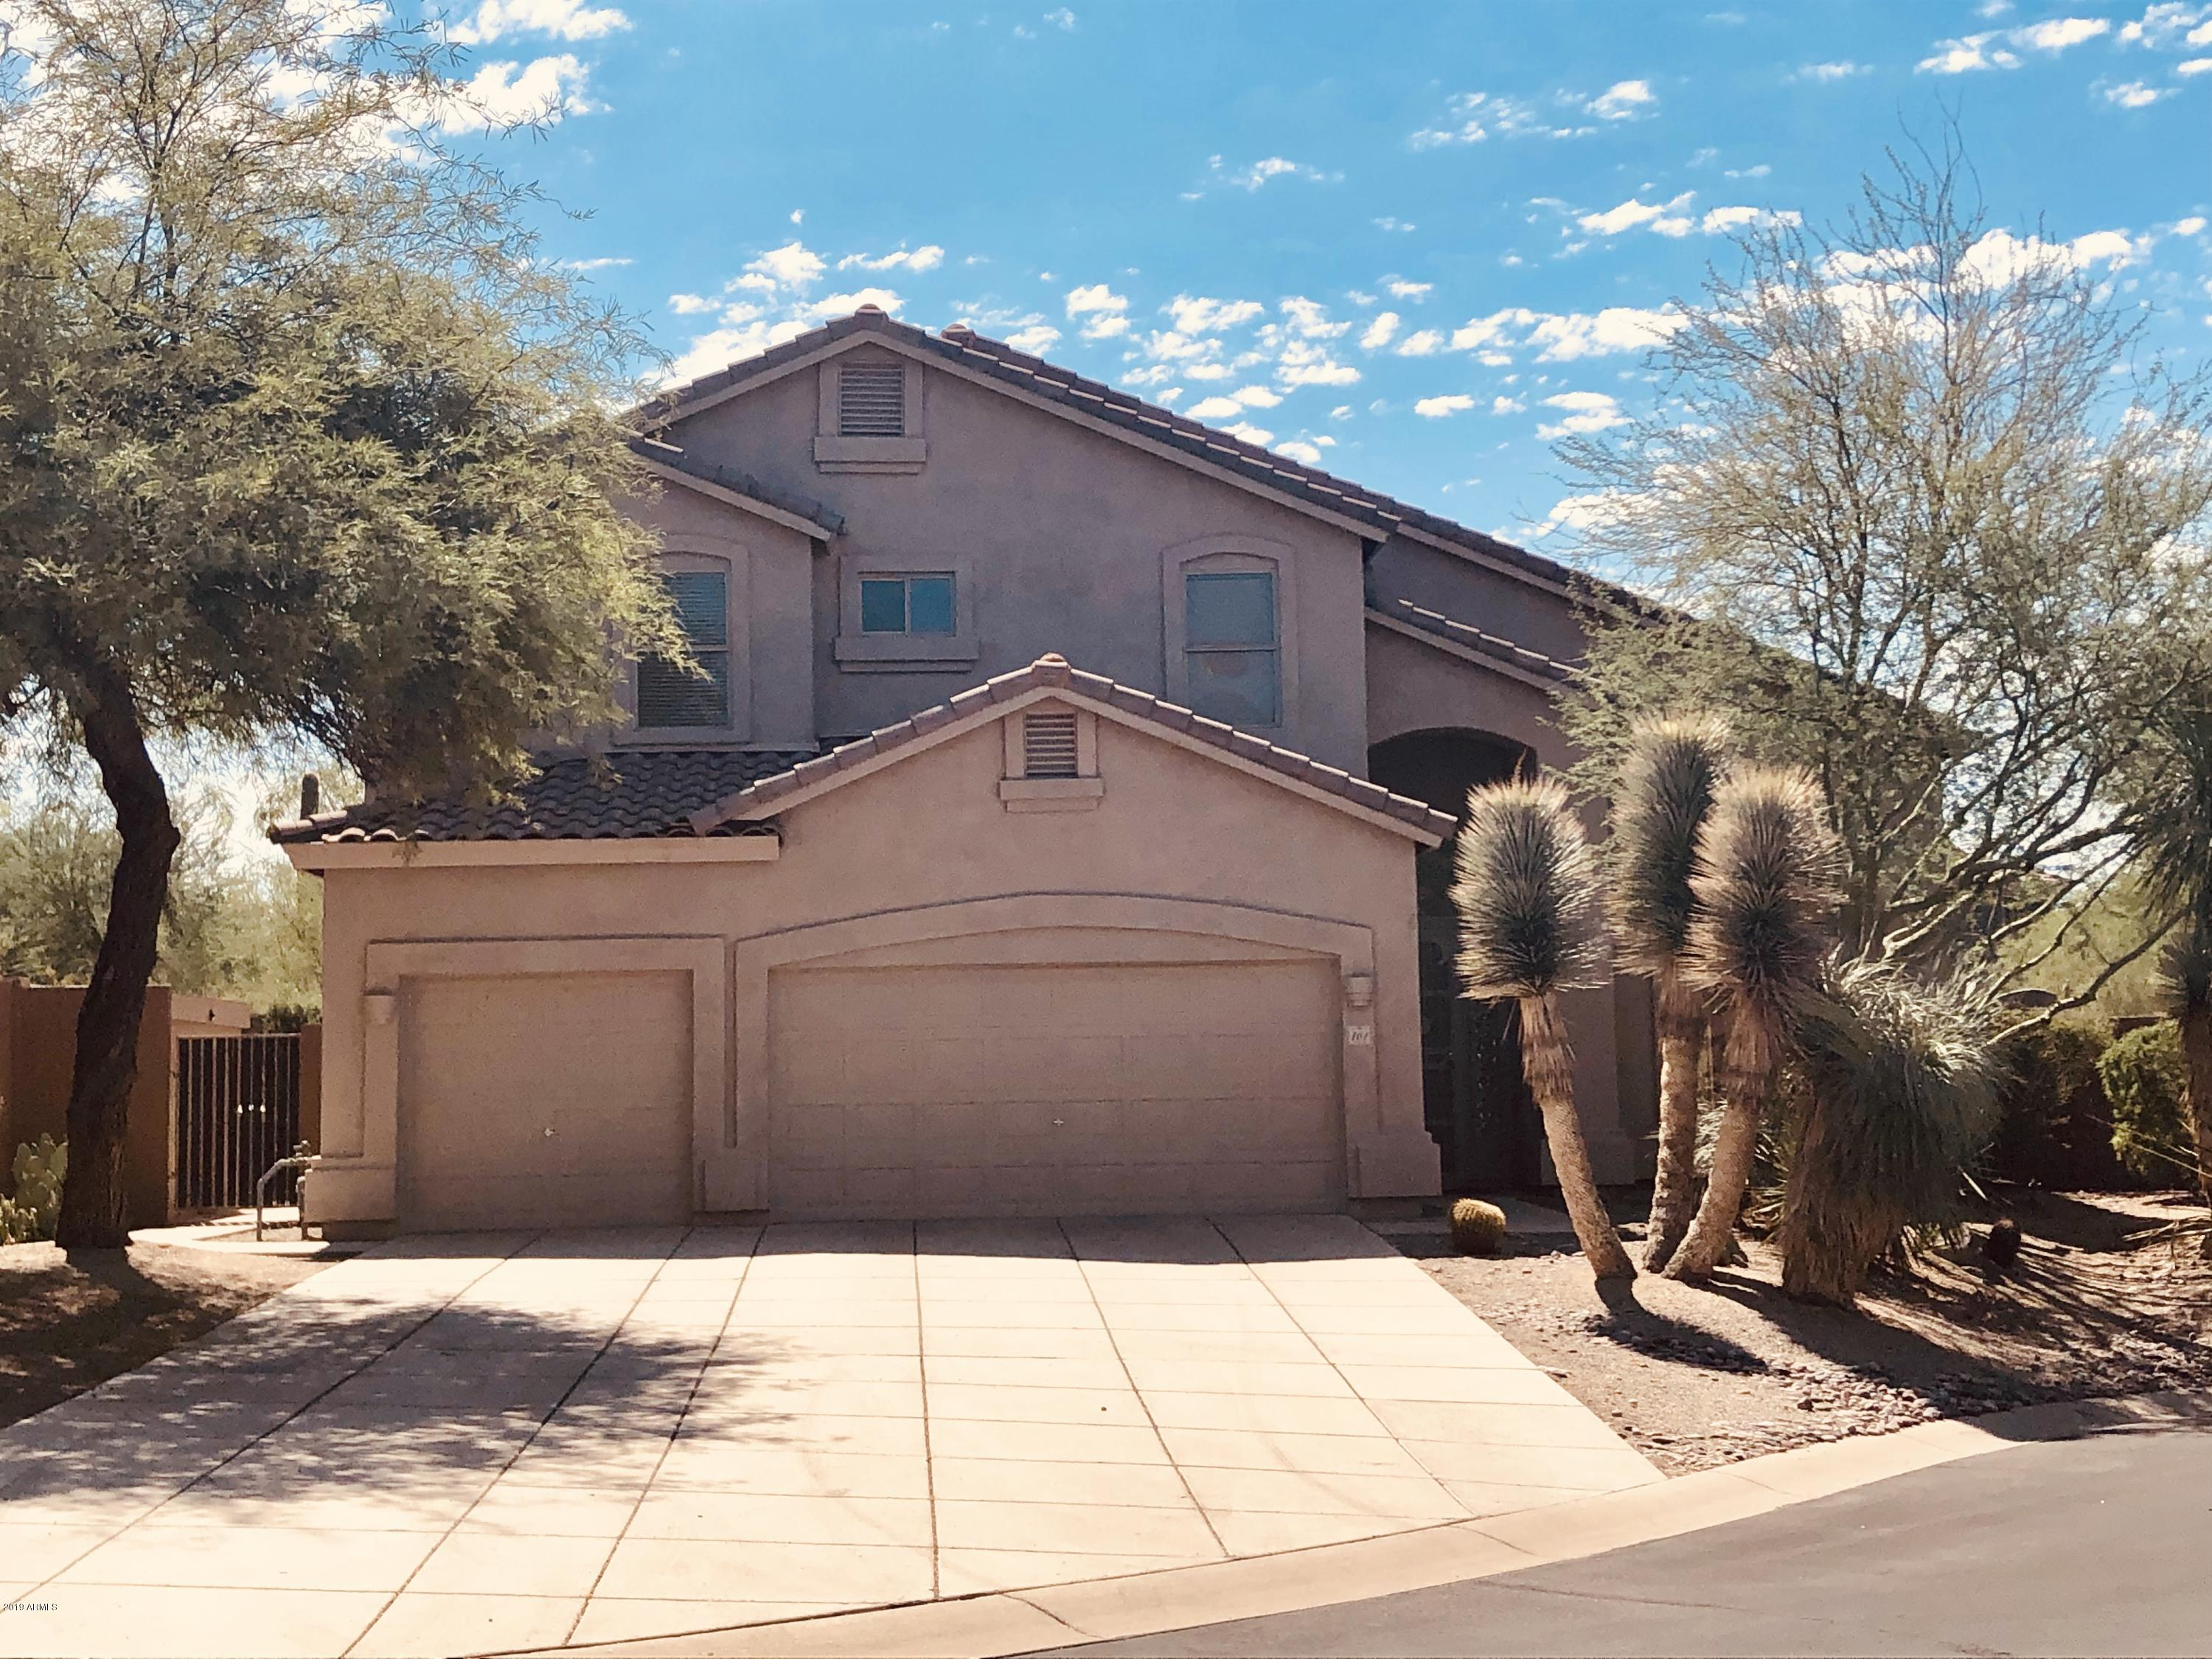 Photo of 3060 N RIDGECREST -- #161, Mesa, AZ 85207